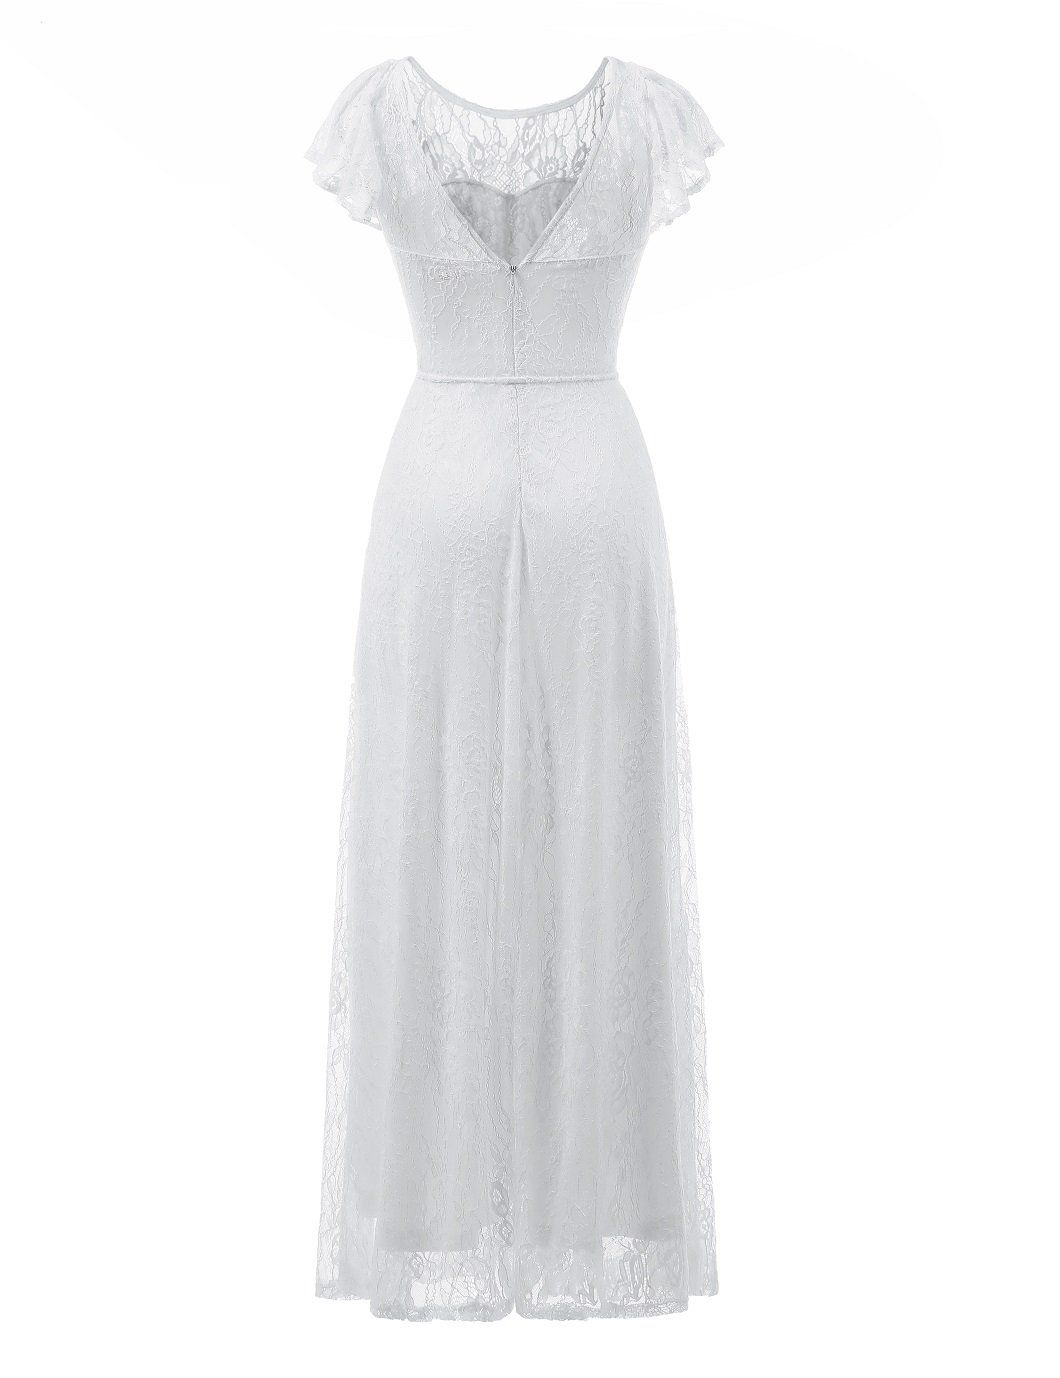 Berylove womens long floral lace maxi dress evening party wedding